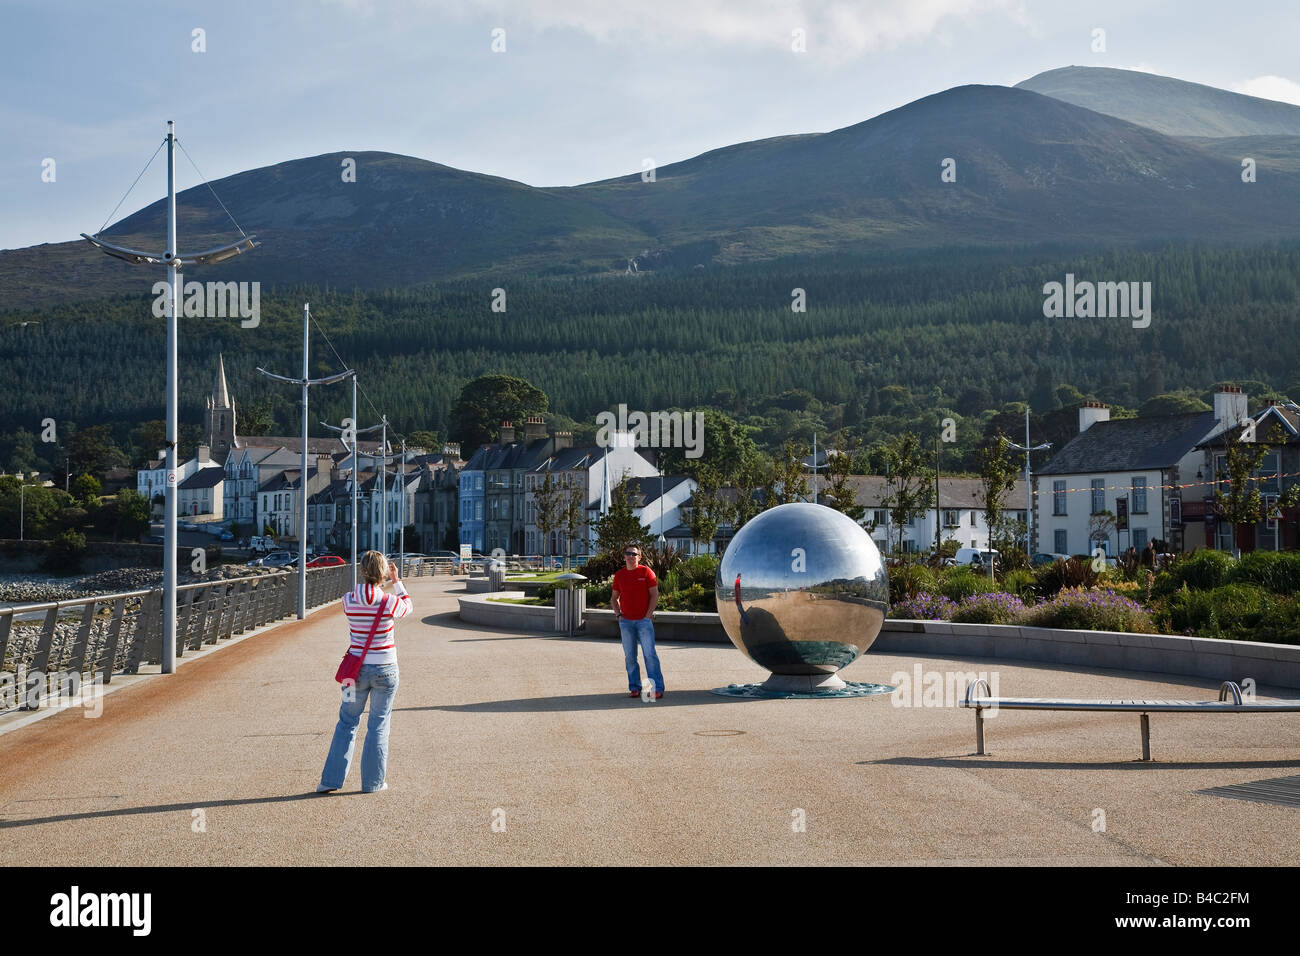 Sculpture on Newcastle promenade (Global Journeys by Chris Wilson), County Down, Northern Ireland, UK - Stock Image